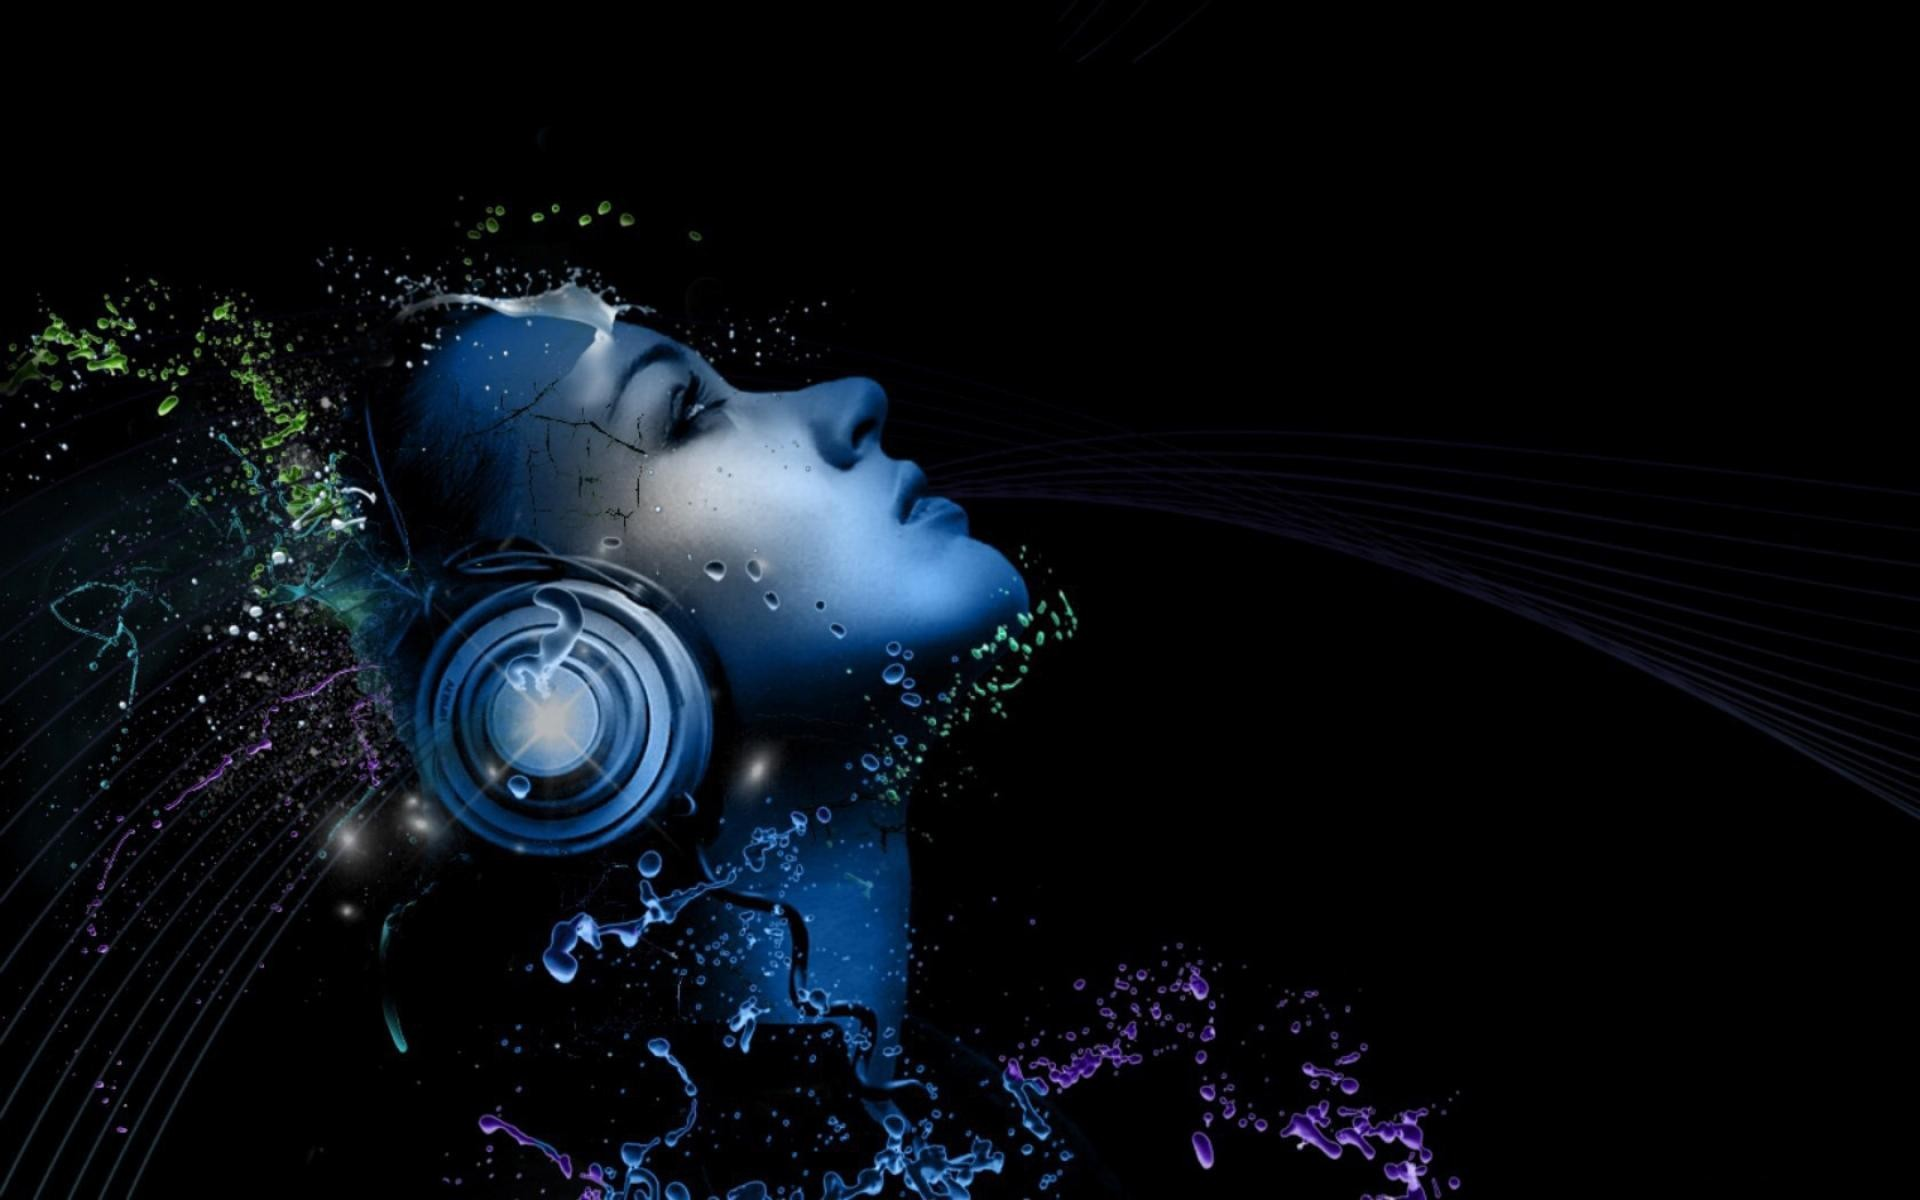 Dj Wallpapers Free Download Posted By Christopher Anderson